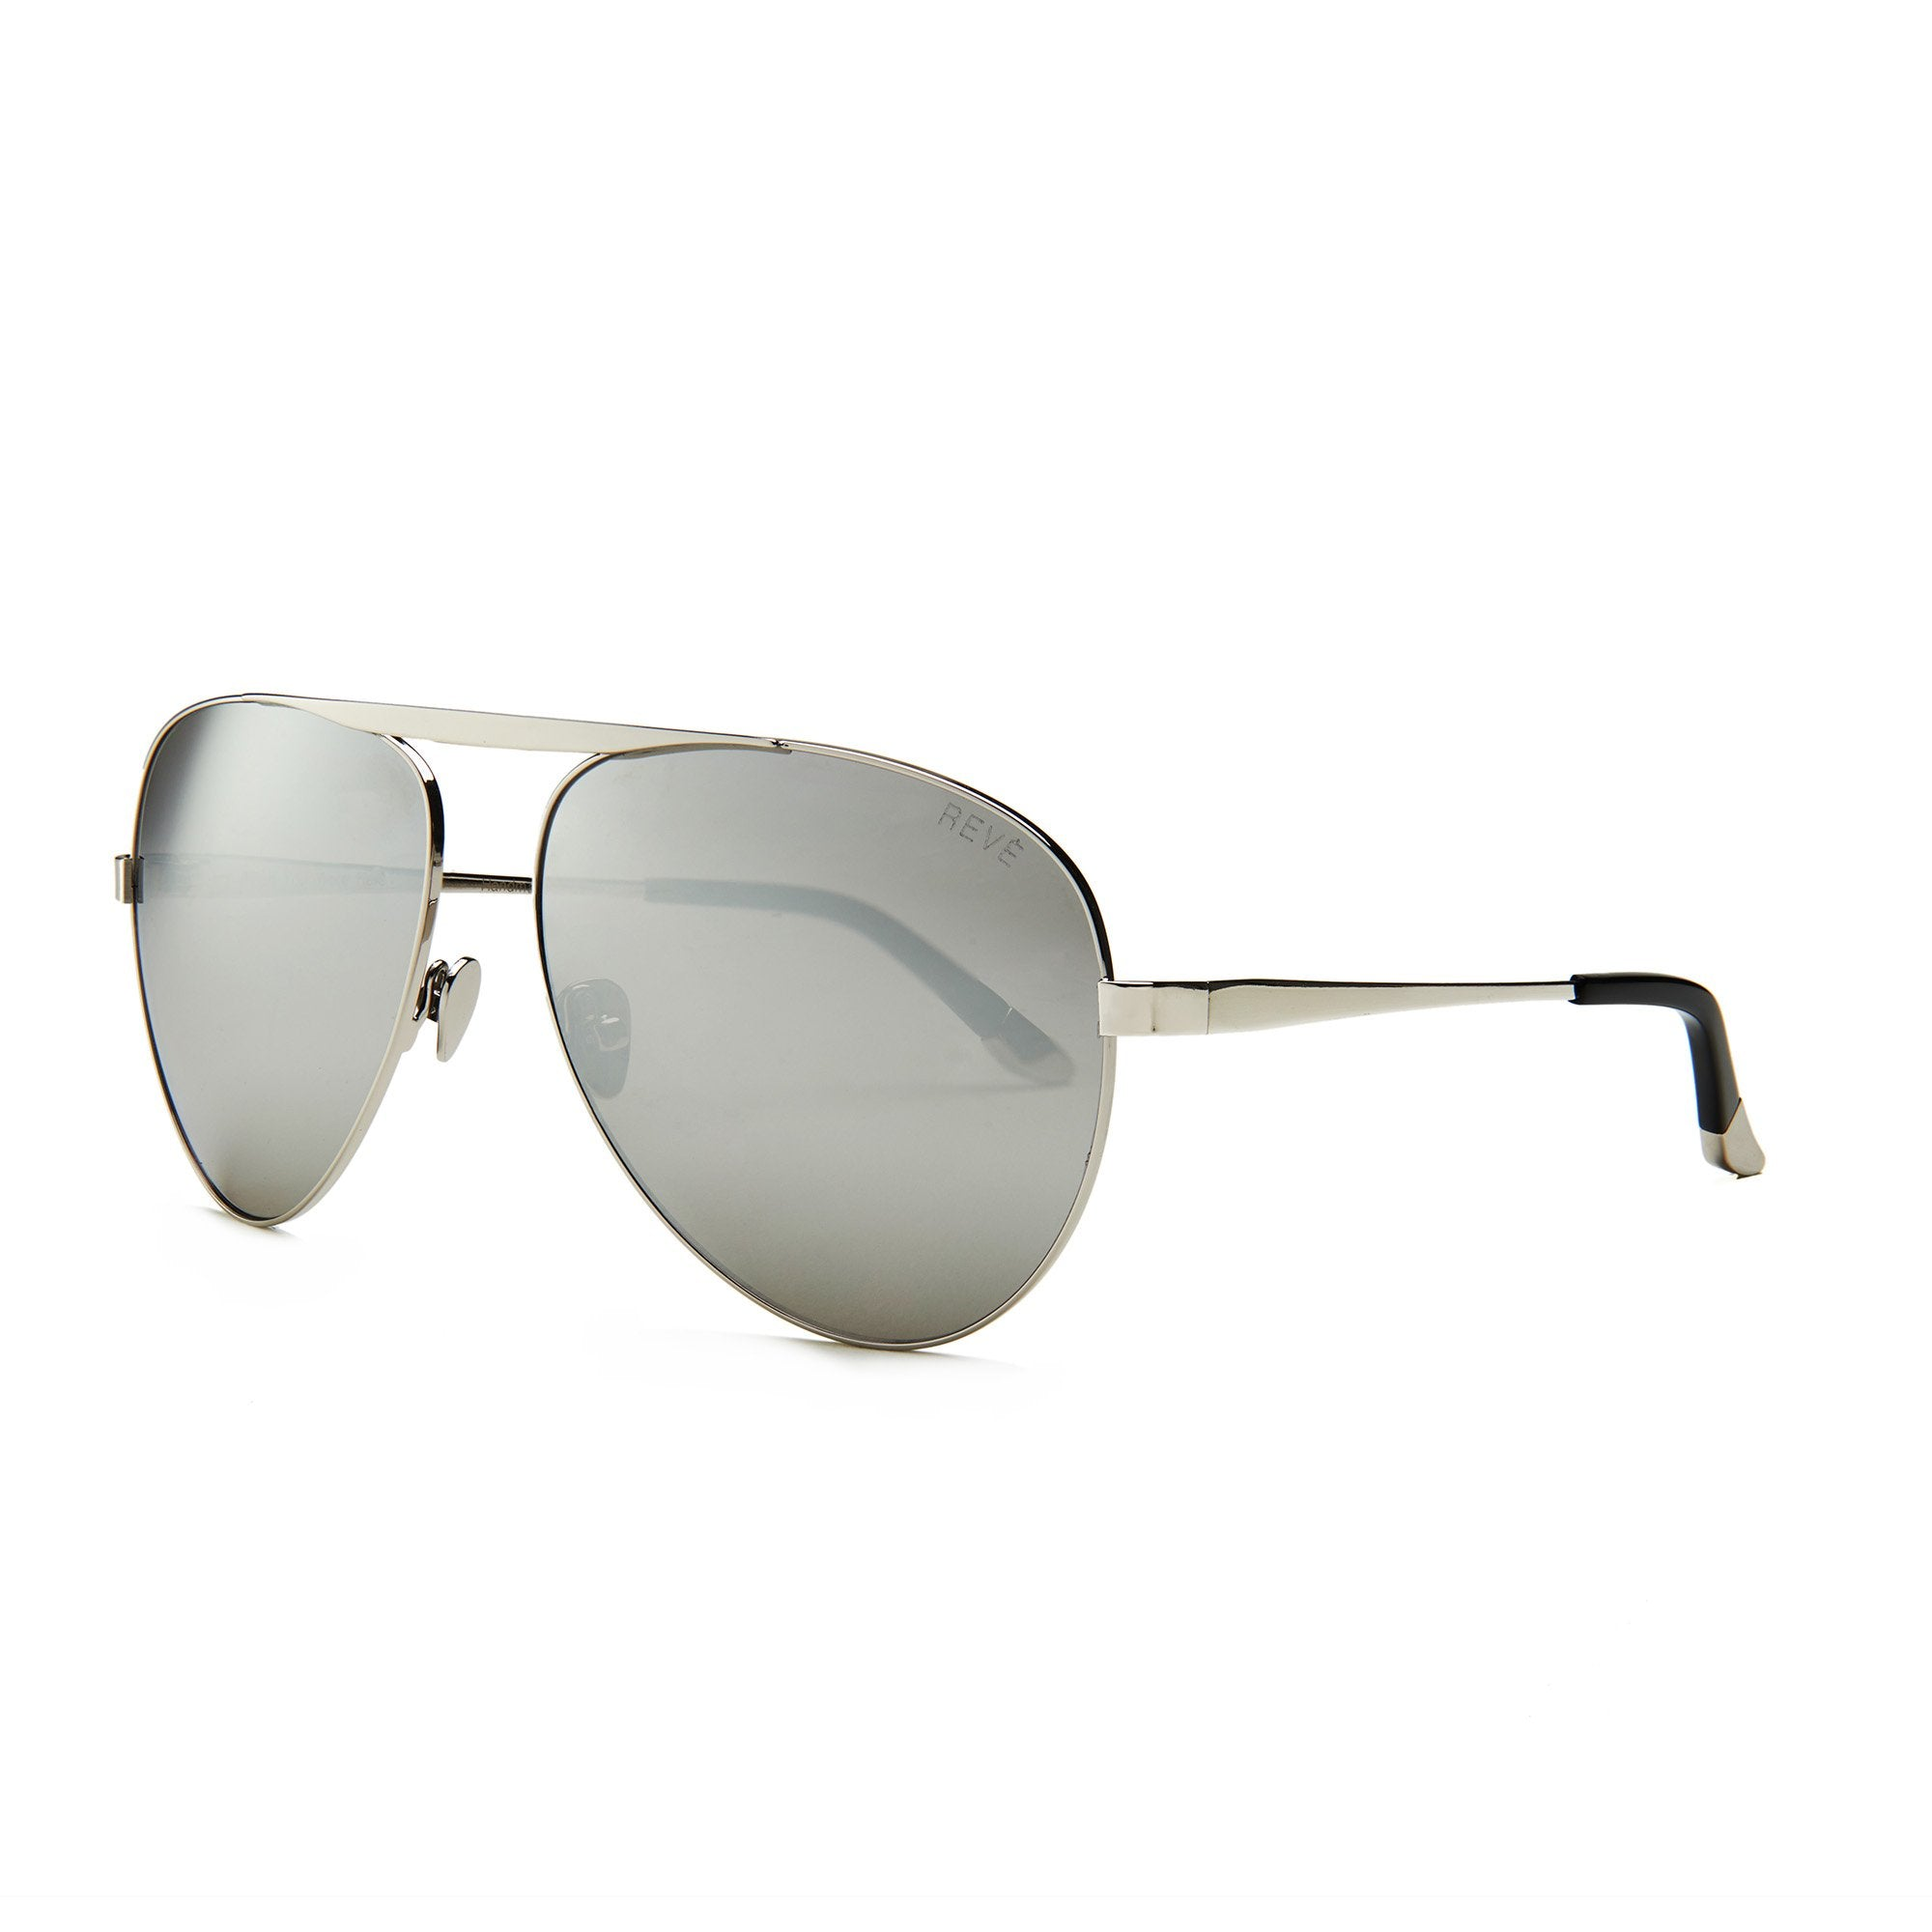 REVE by RENE wish you were here aviator sunglasses